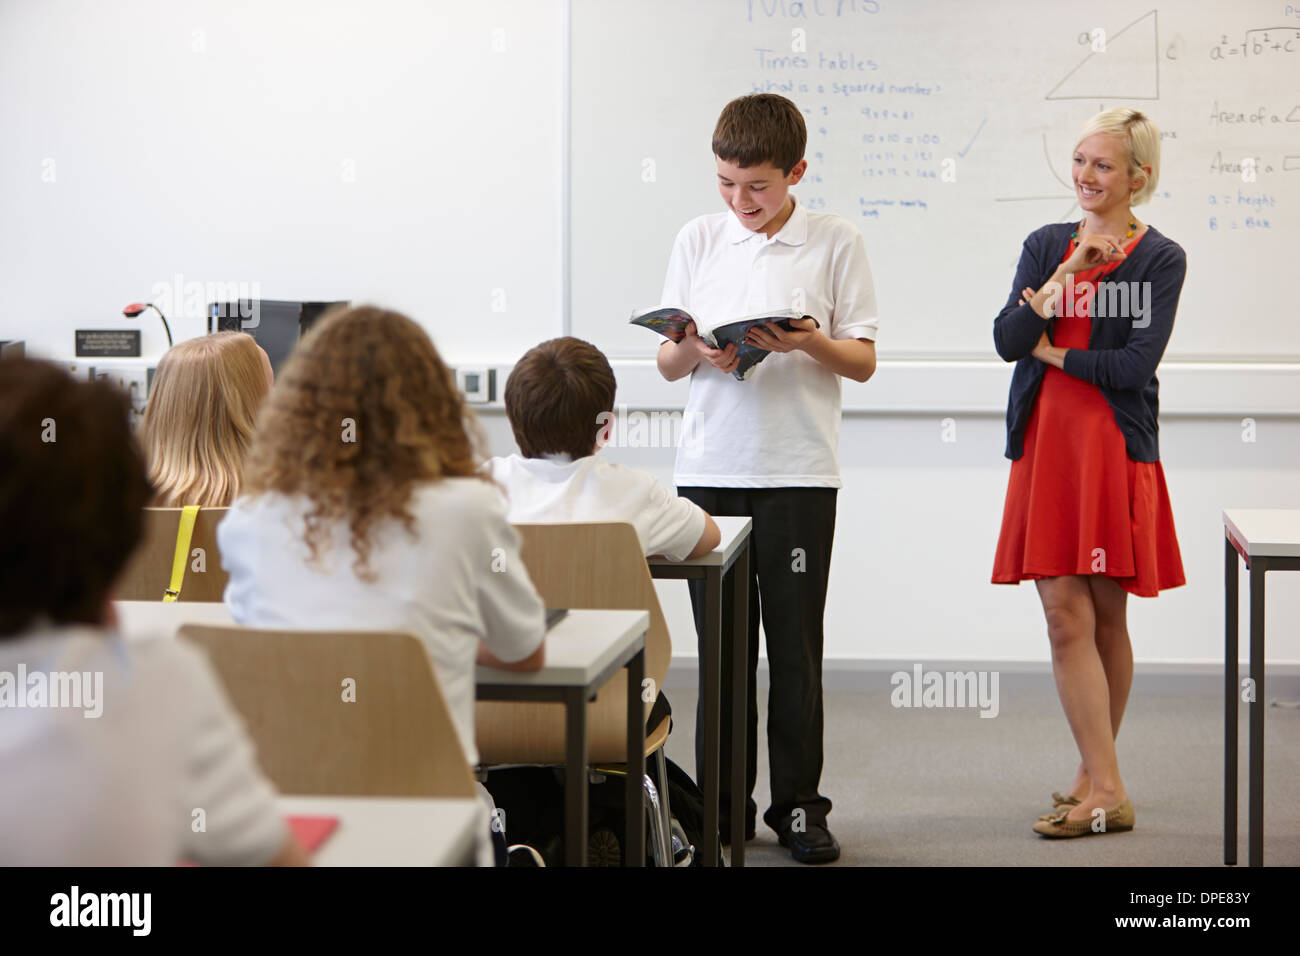 Schoolboy reading from textbook in front of class - Stock Image